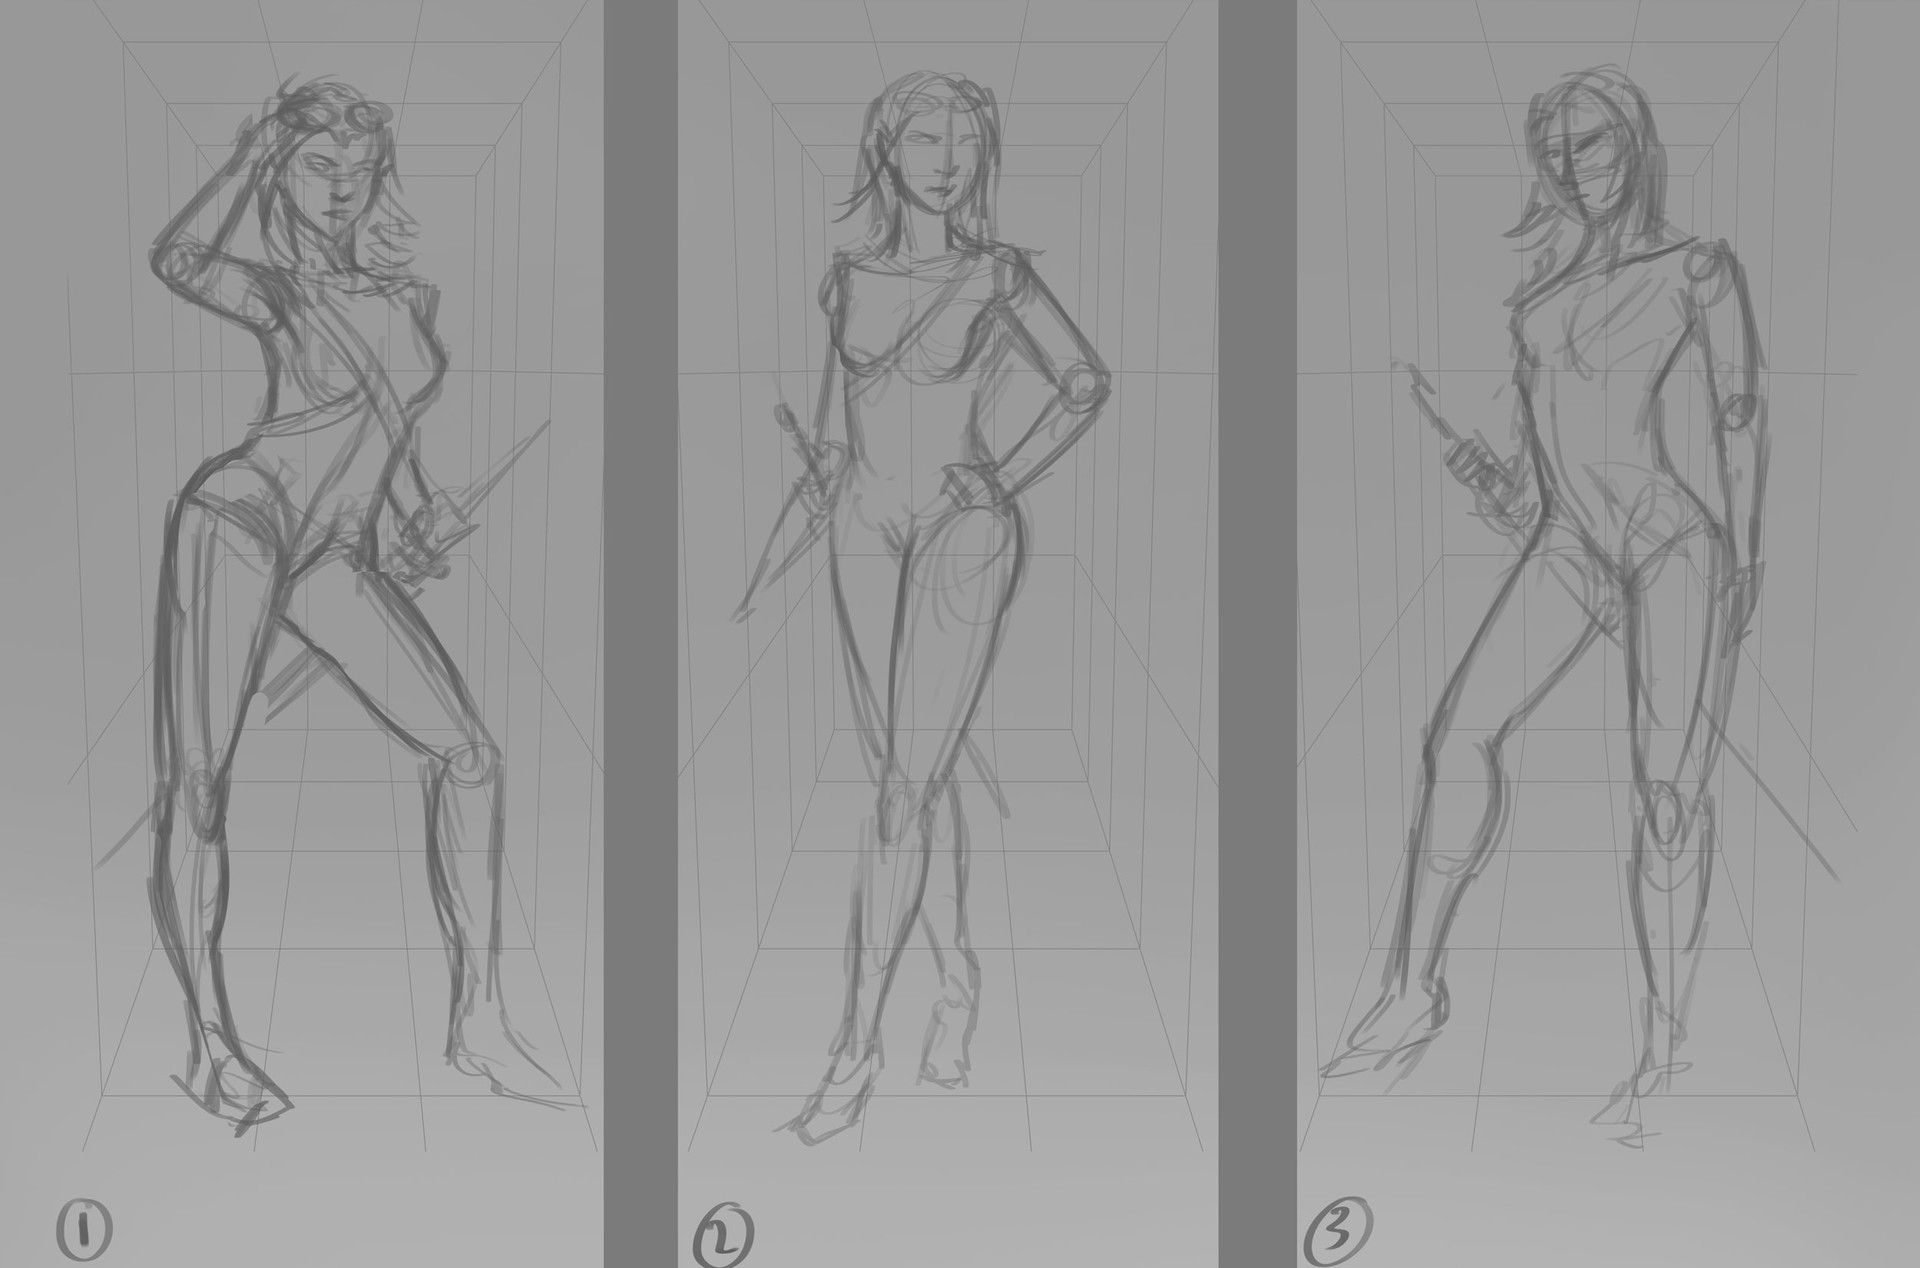 Robert crescenzio eolanna moonhair pose concepts sheet 1